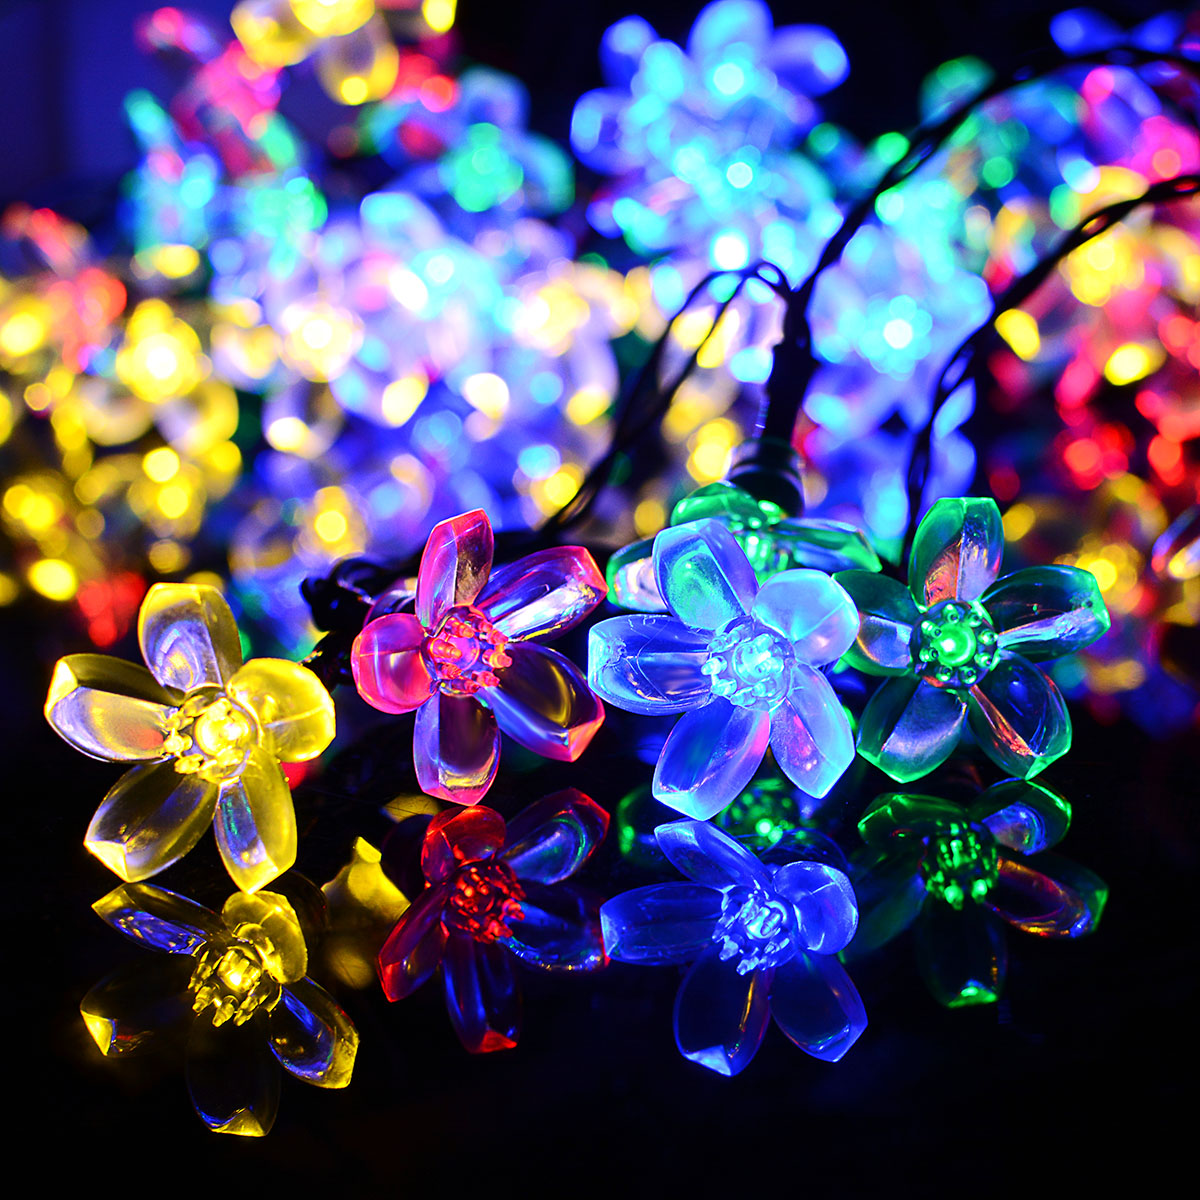 solar powered flower string lights 7m 50 led blossom multi color outdoor fairy lights decorative christmas wedding party in solar lamps from lights - Flower Christmas Lights